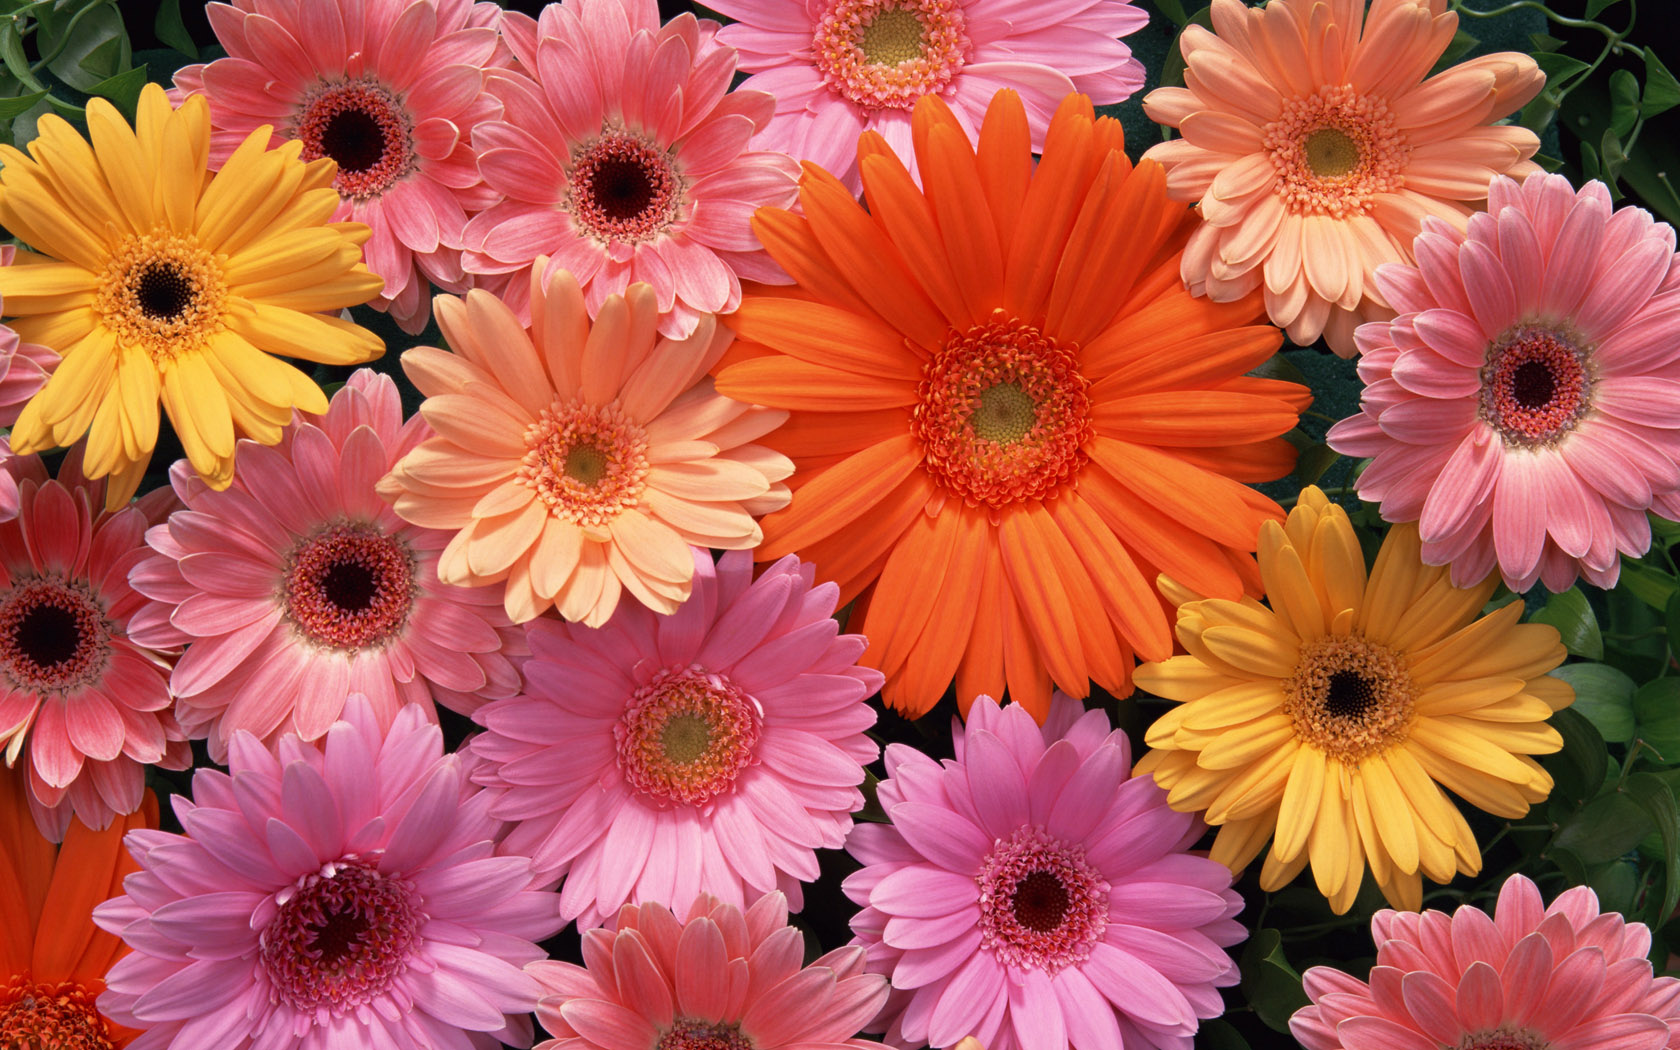 Free flower prints to download graphic royalty free high resolution flower photos – Free wallpaper download graphic royalty free